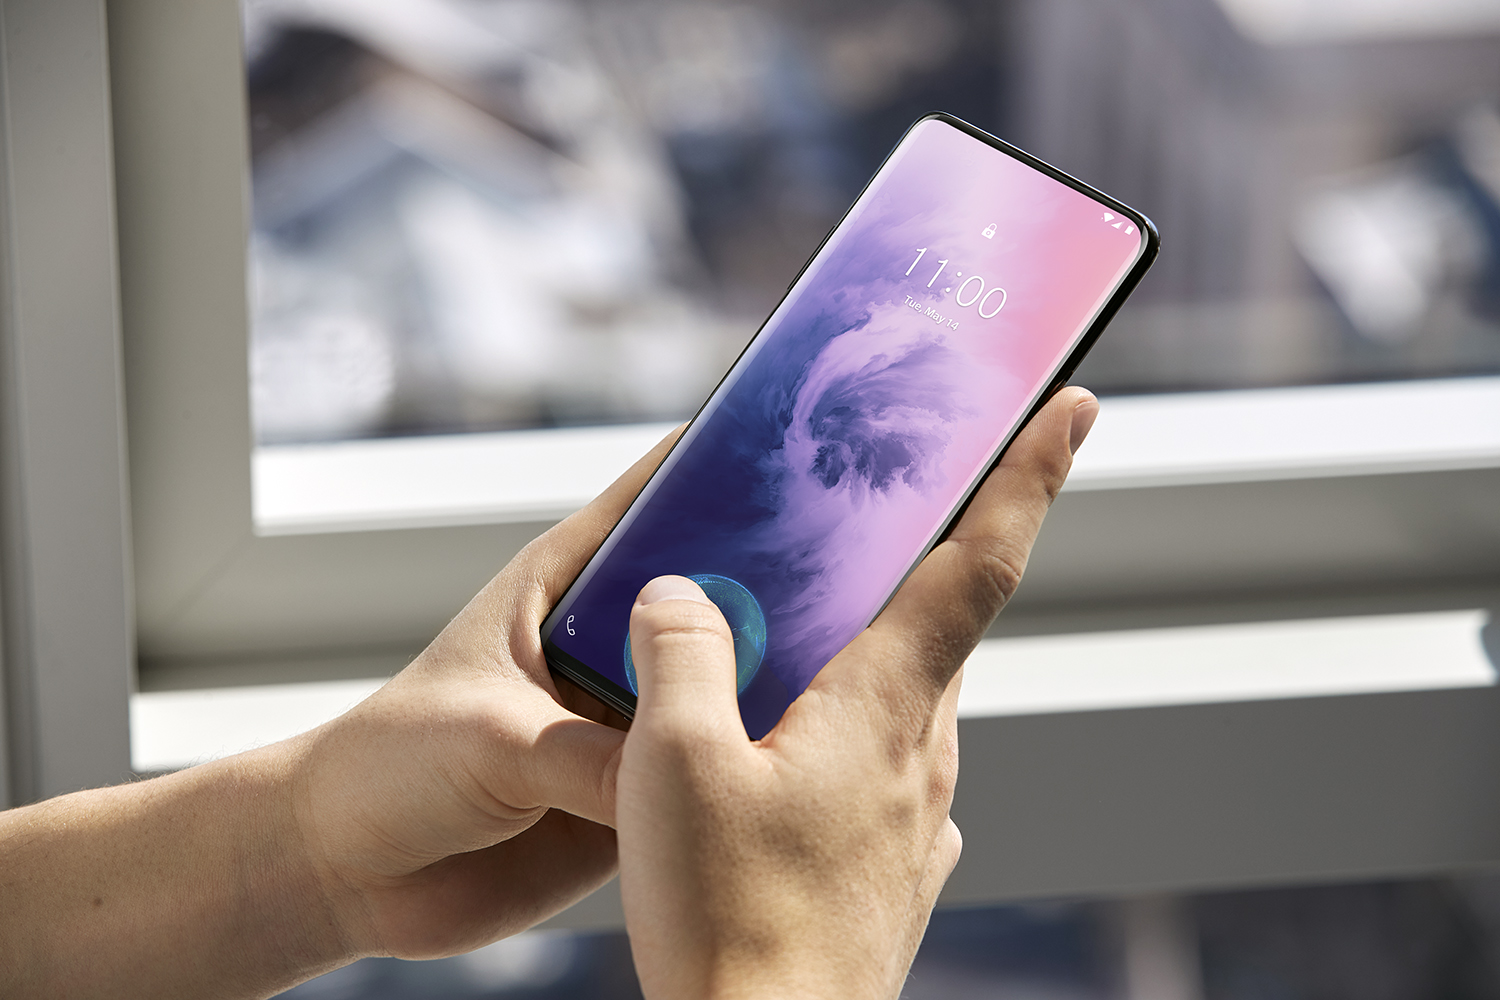 The fingerprint scanner is built into the display.